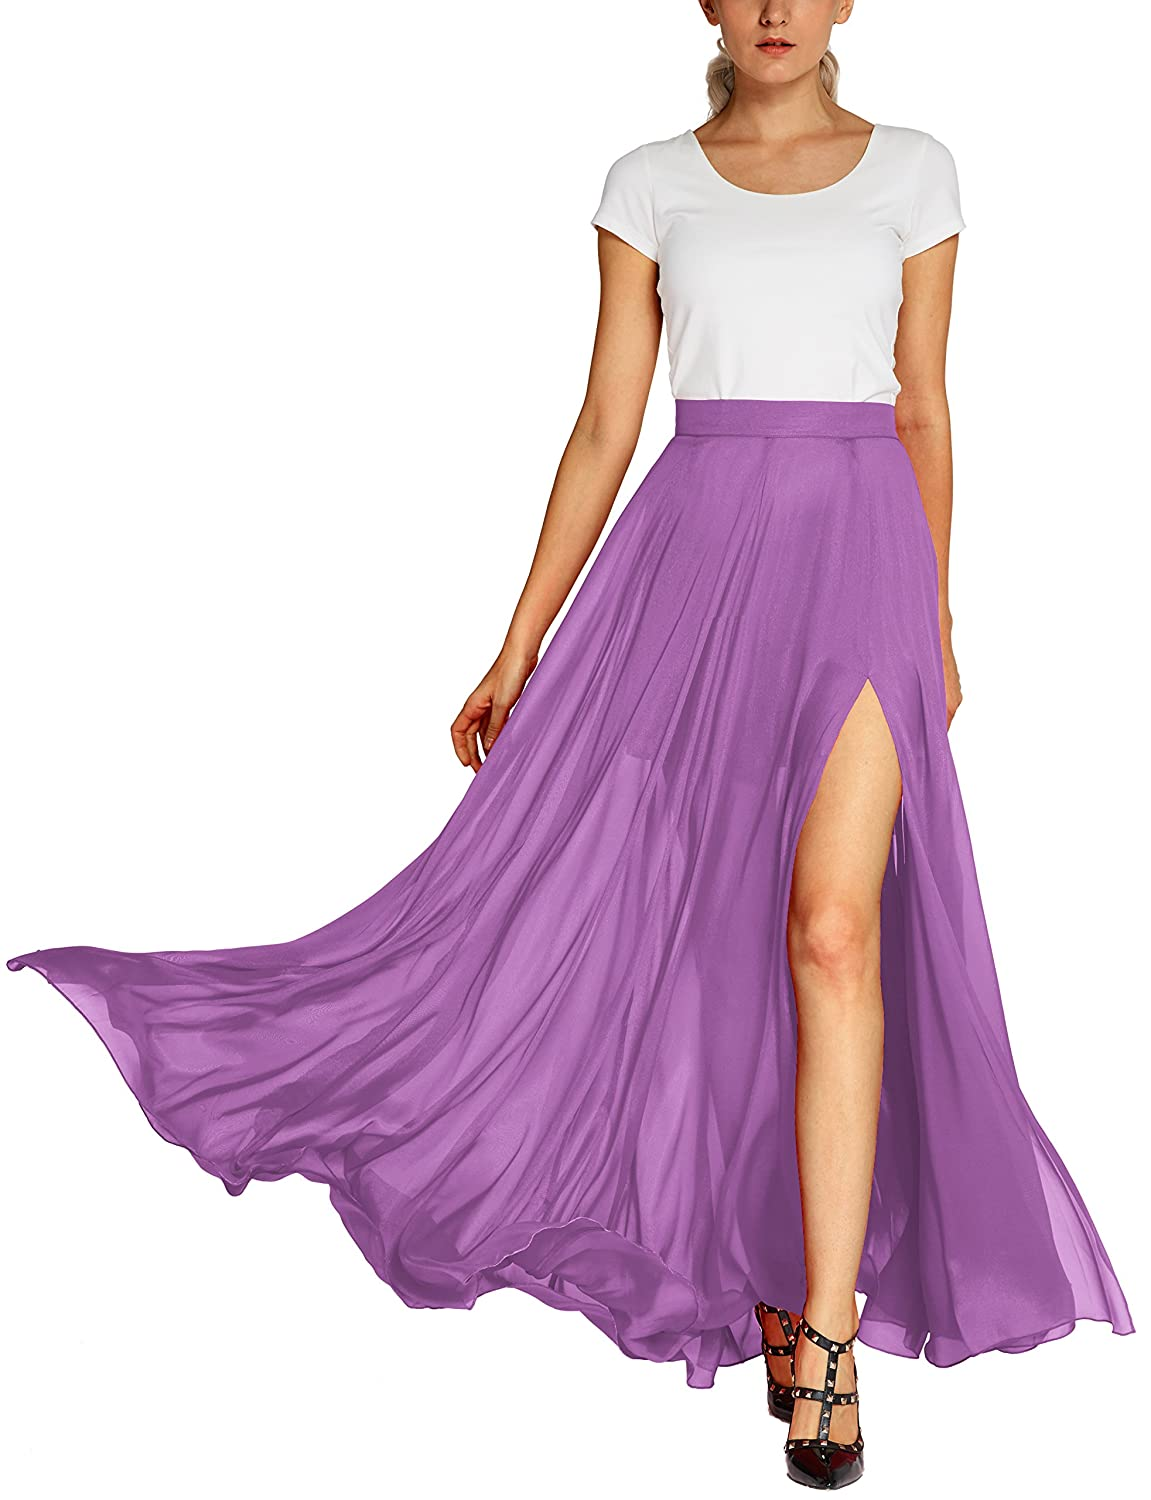 3c6aab5f30 Womens elegant style high waist long maxi skirts,solid split skirt with  lining, zipper back. Features:fashion,unique,elegant maxi beach long split  skirts ...